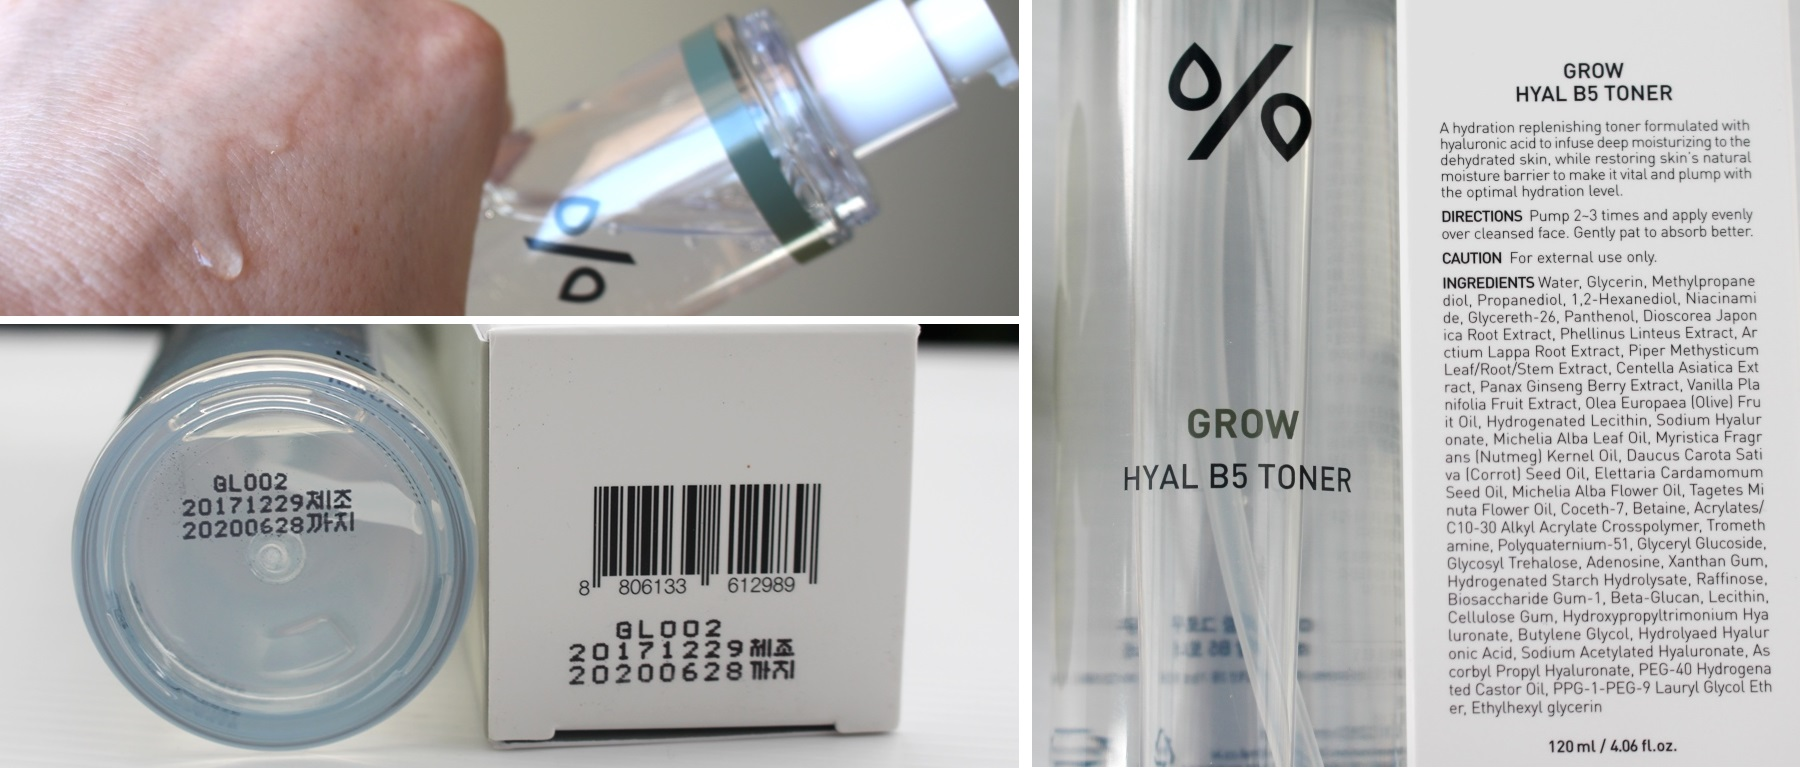 LGH Grow Hyal B5 Toner - Texture, Ingredients and Expiry